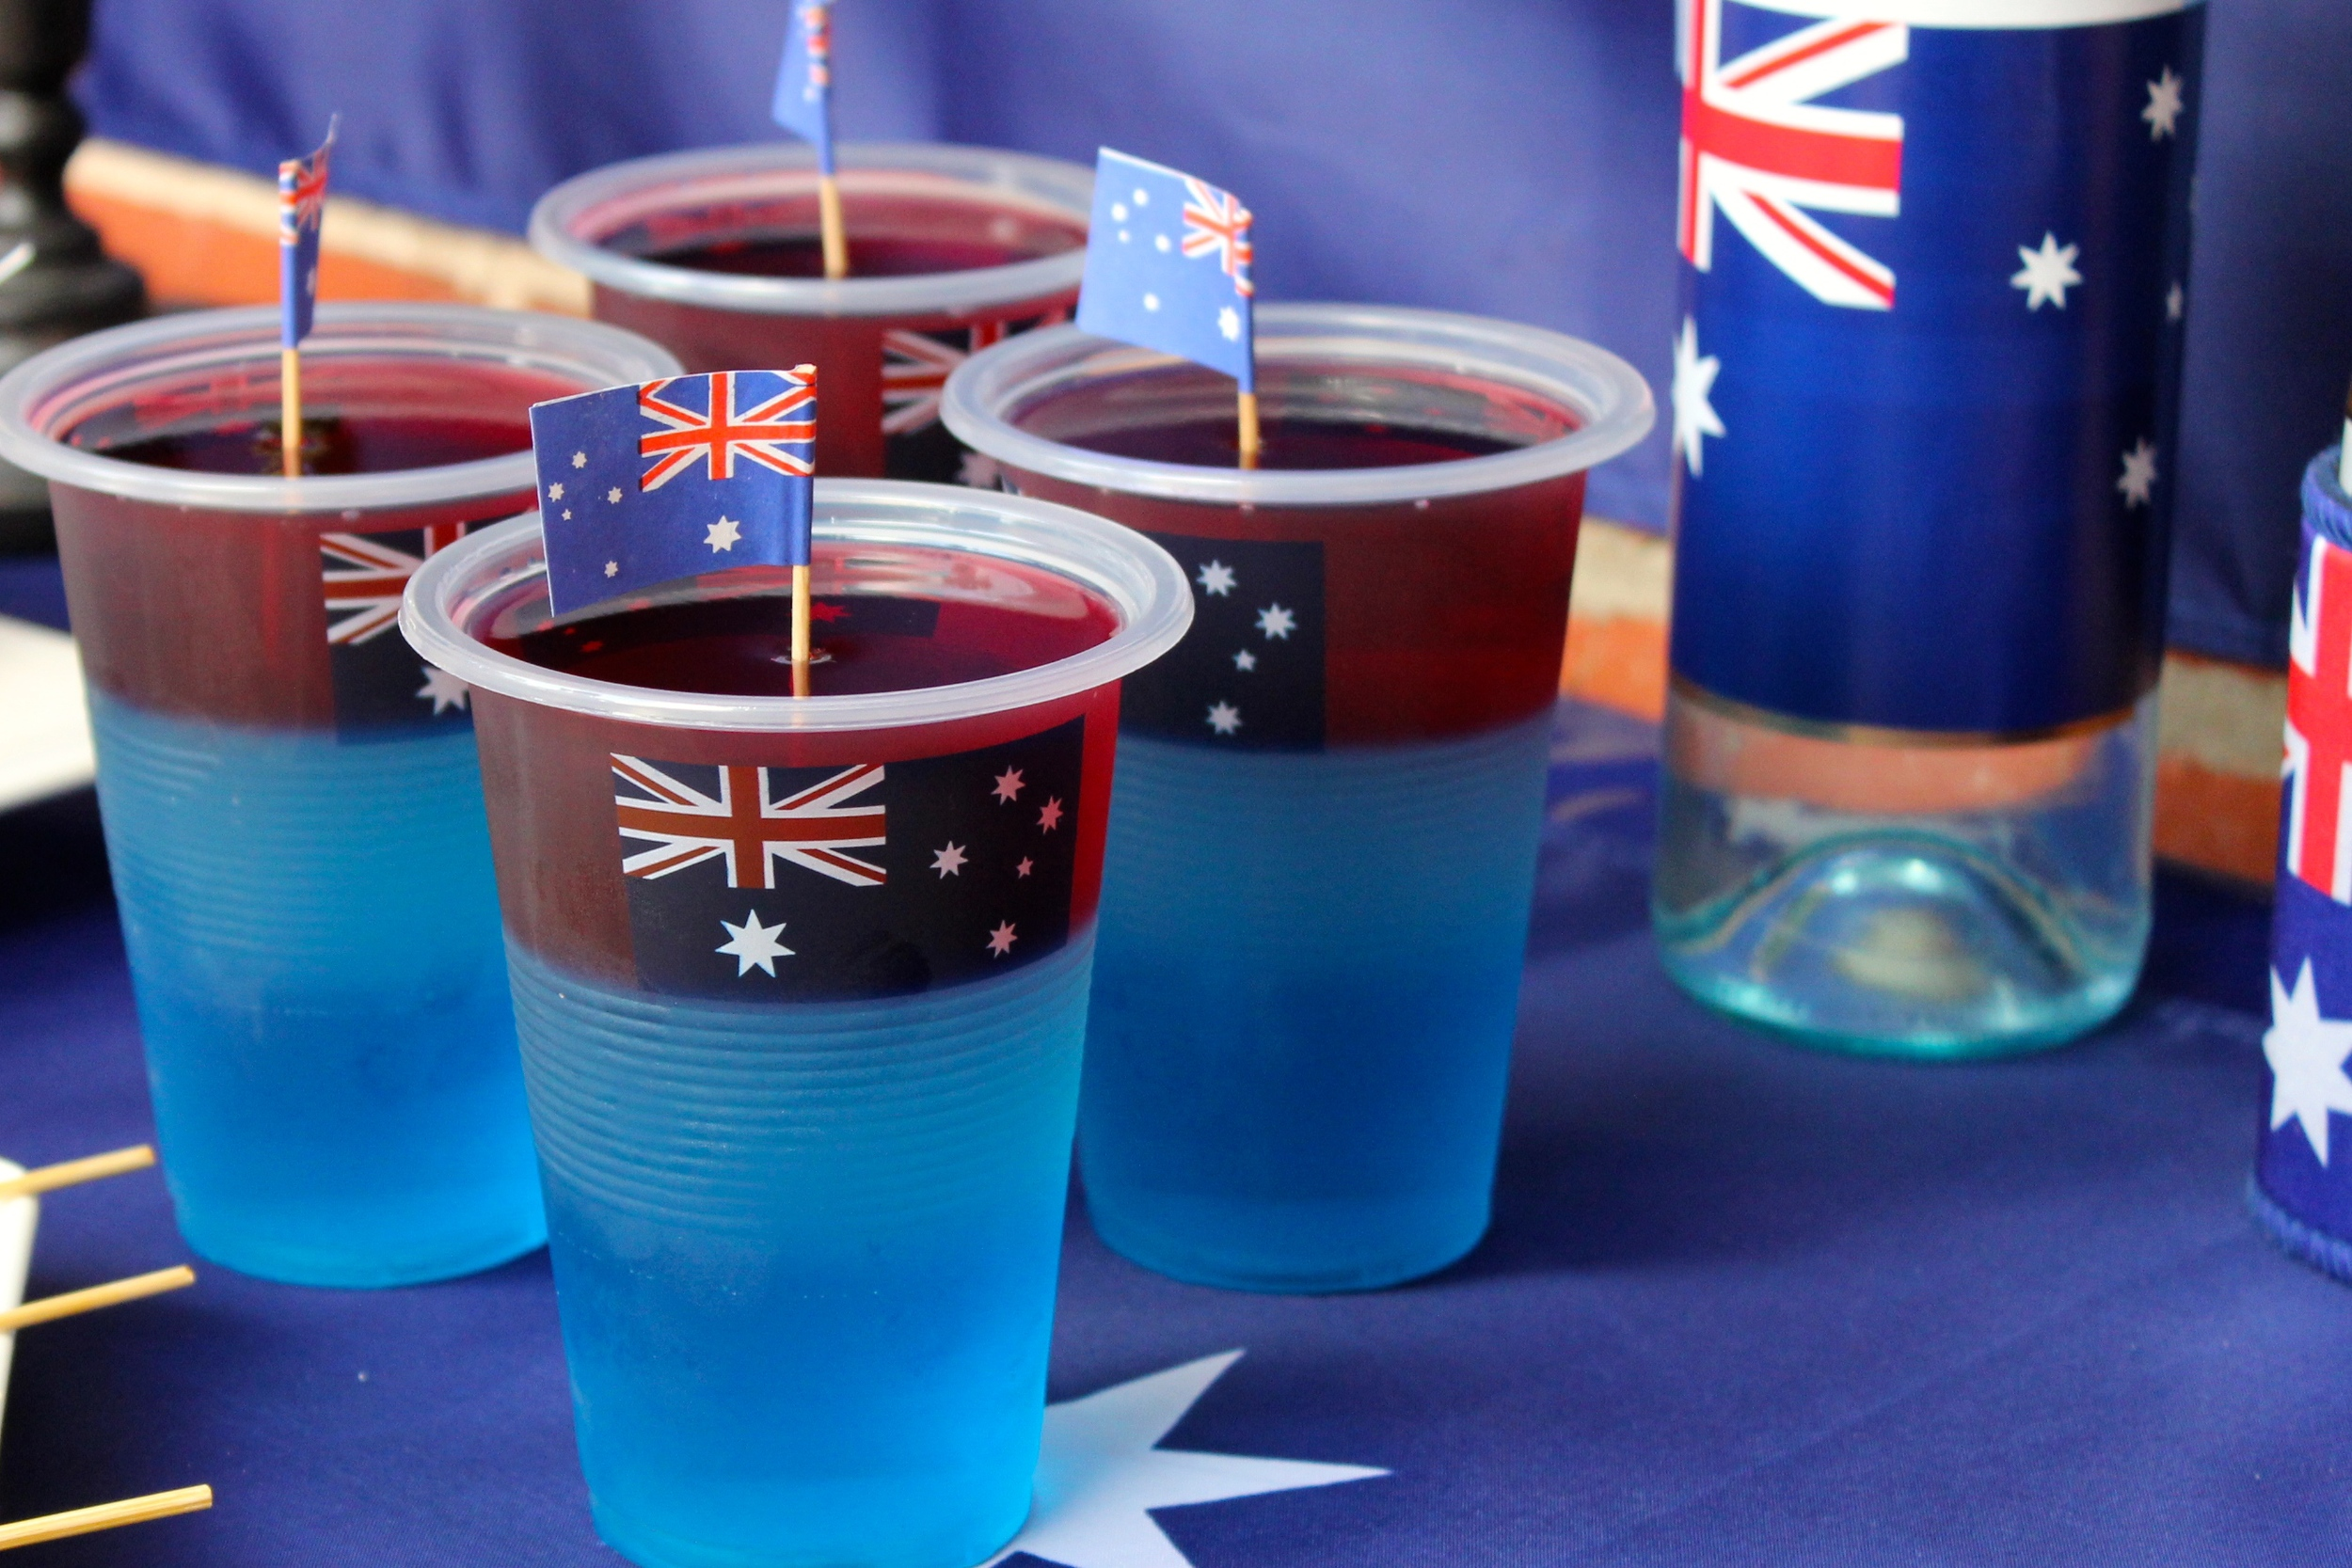 Australia Day - Layered Jelly Cups